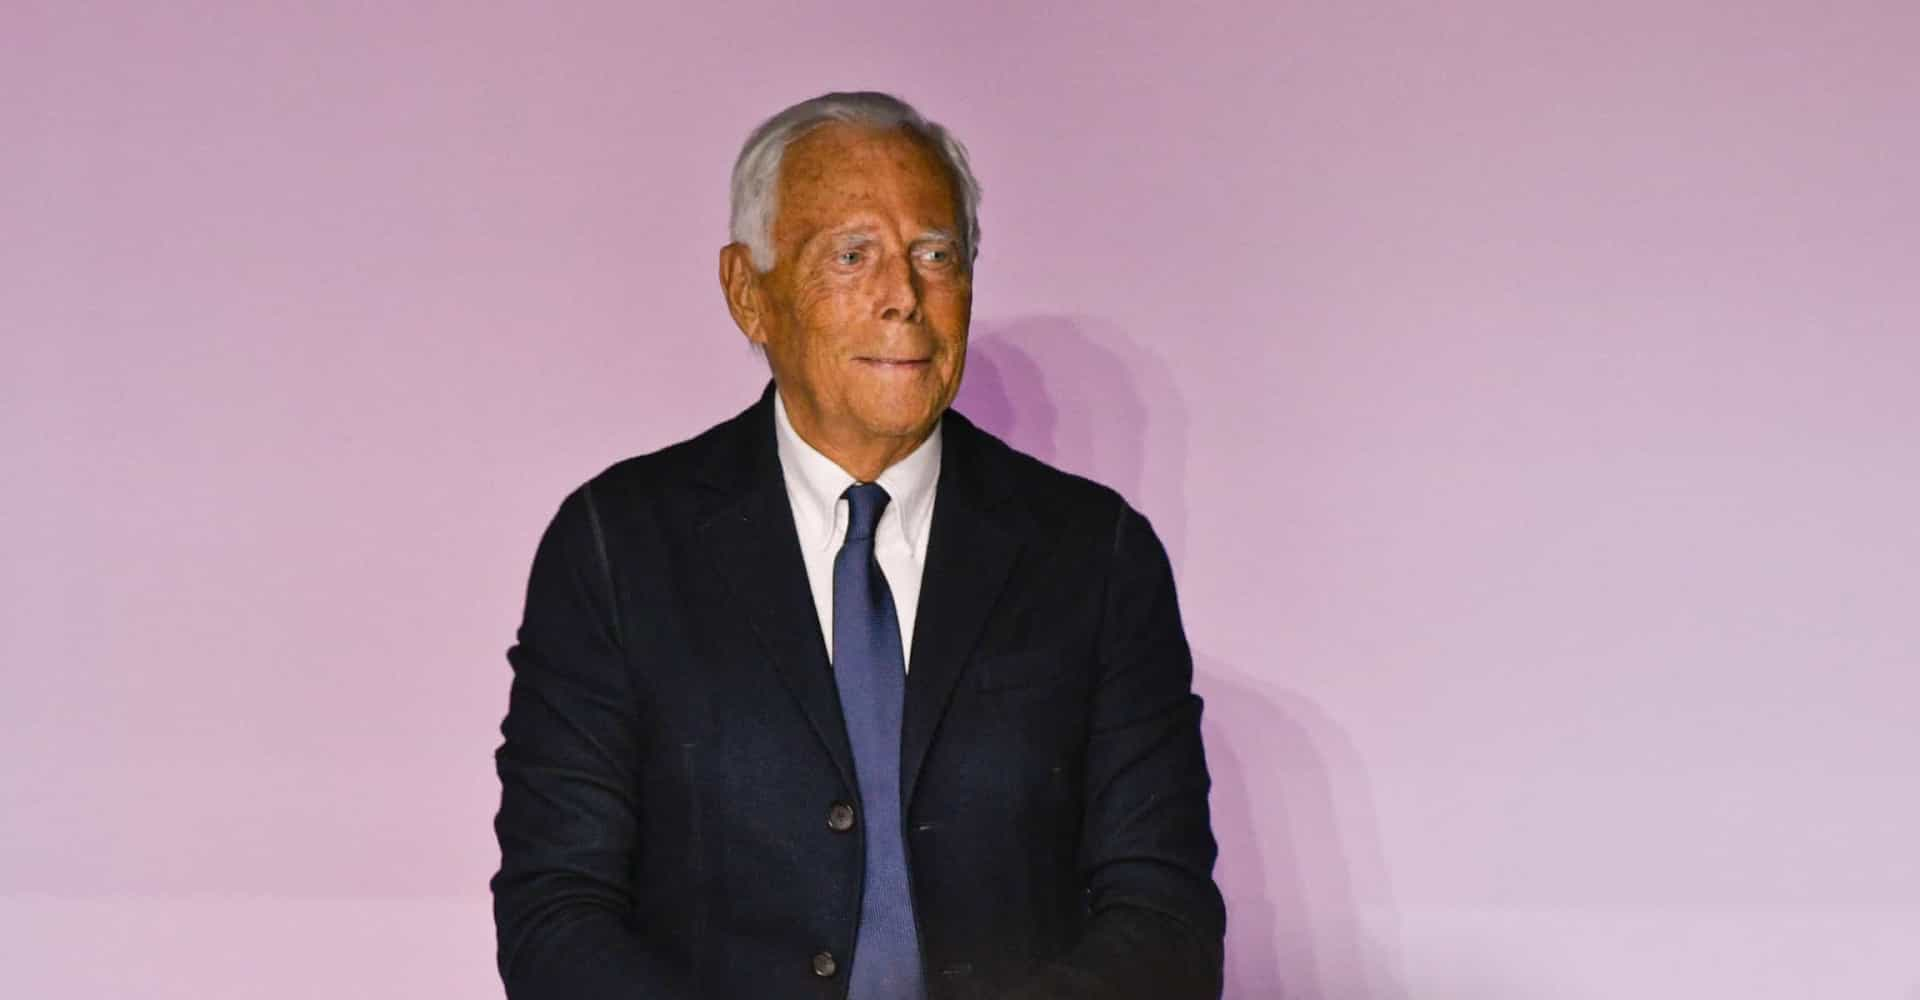 Hearts of gold: Giorgio Armani and other incredibly charitable celebs